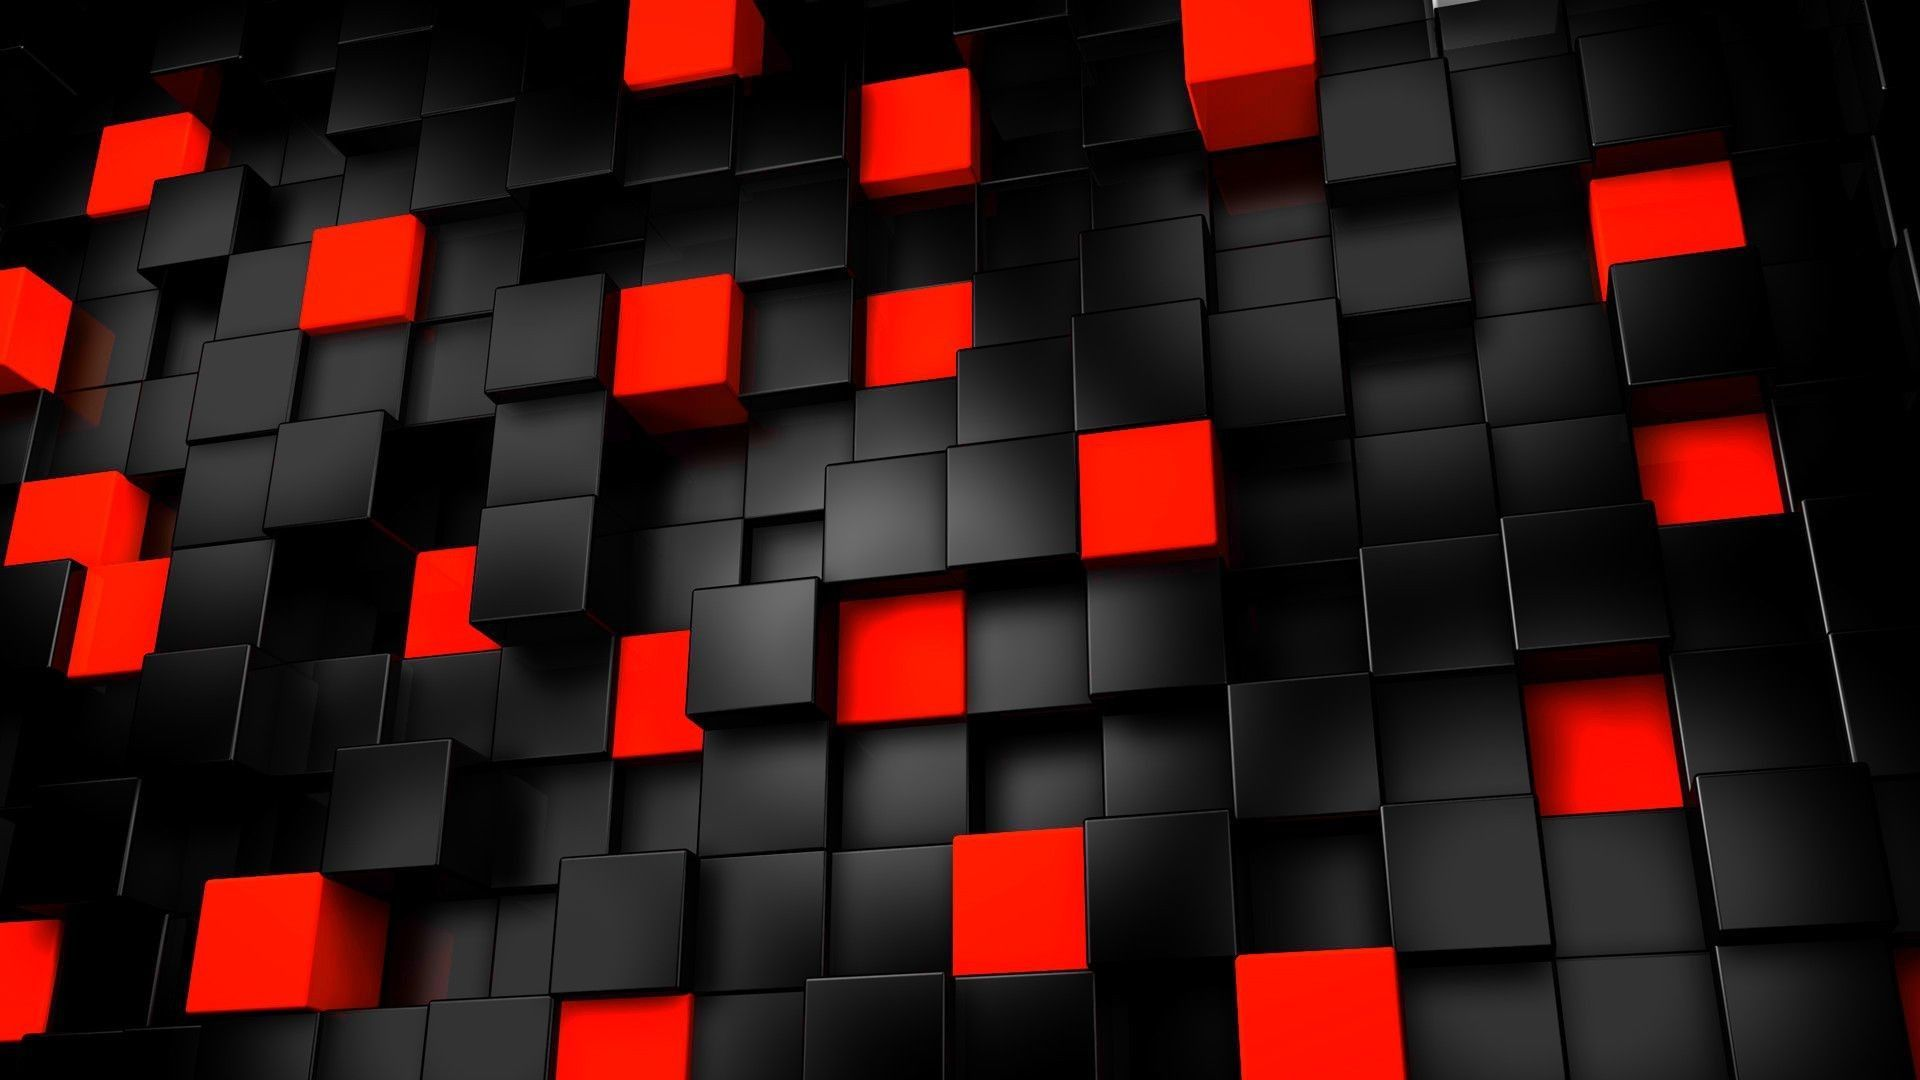 Slot28 2 In 2020 With Images Red And Black Wallpaper Red Wallpaper Blue Wallpapers